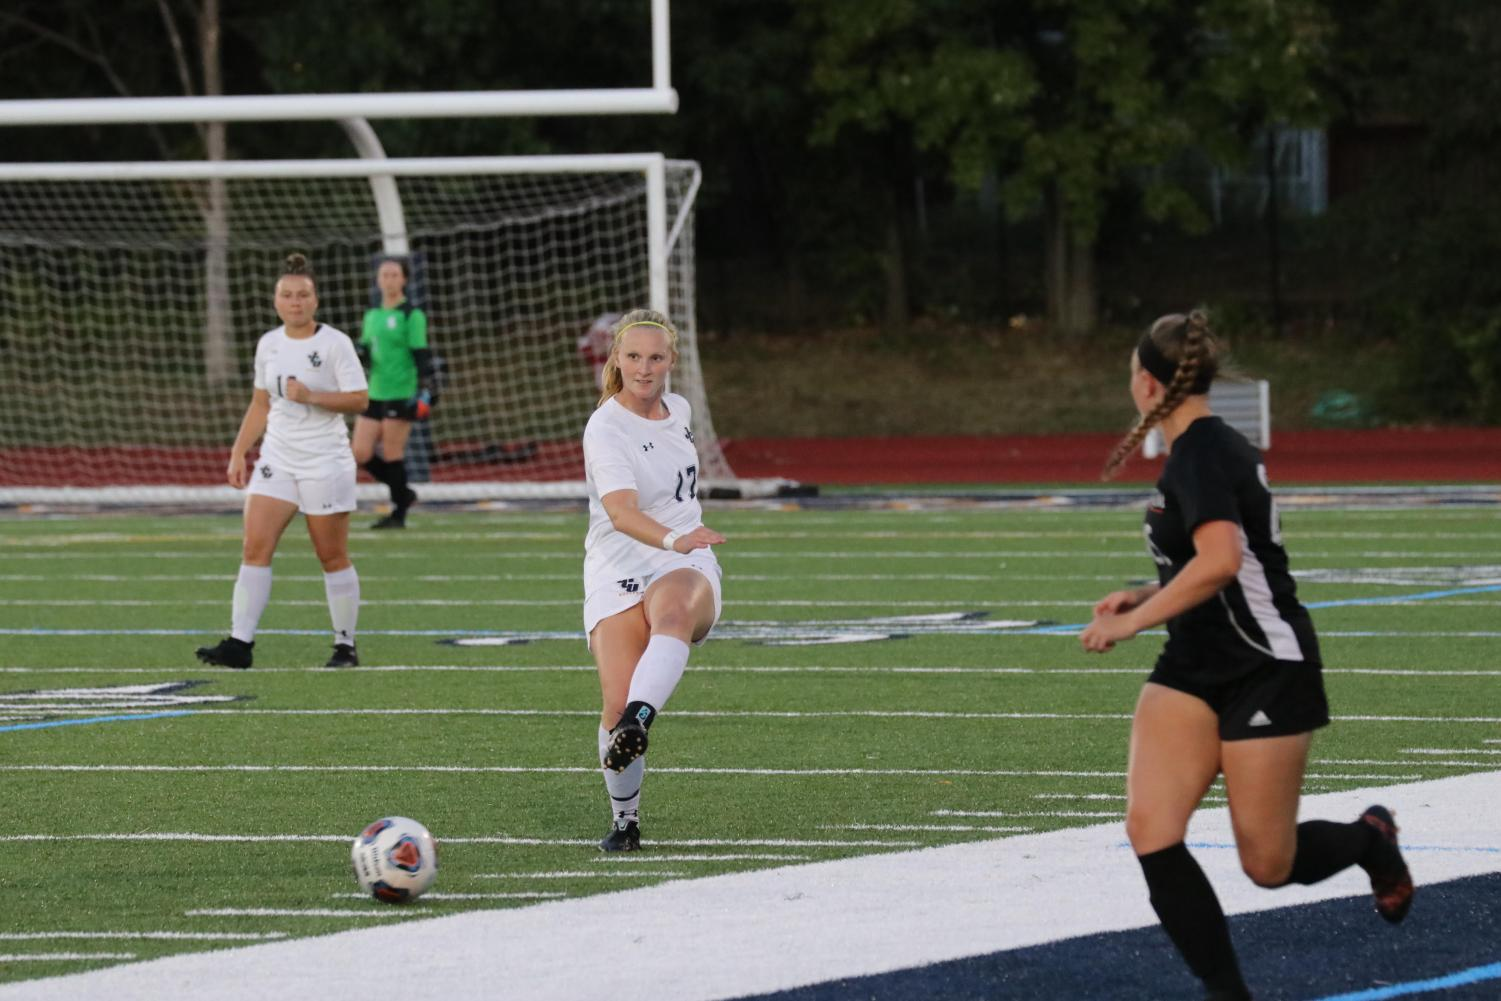 Freshman midfielder Claire Hollern (17) executes a pass in a game at Don Shula Stadium on Saturday, Oct. 12, 2019.